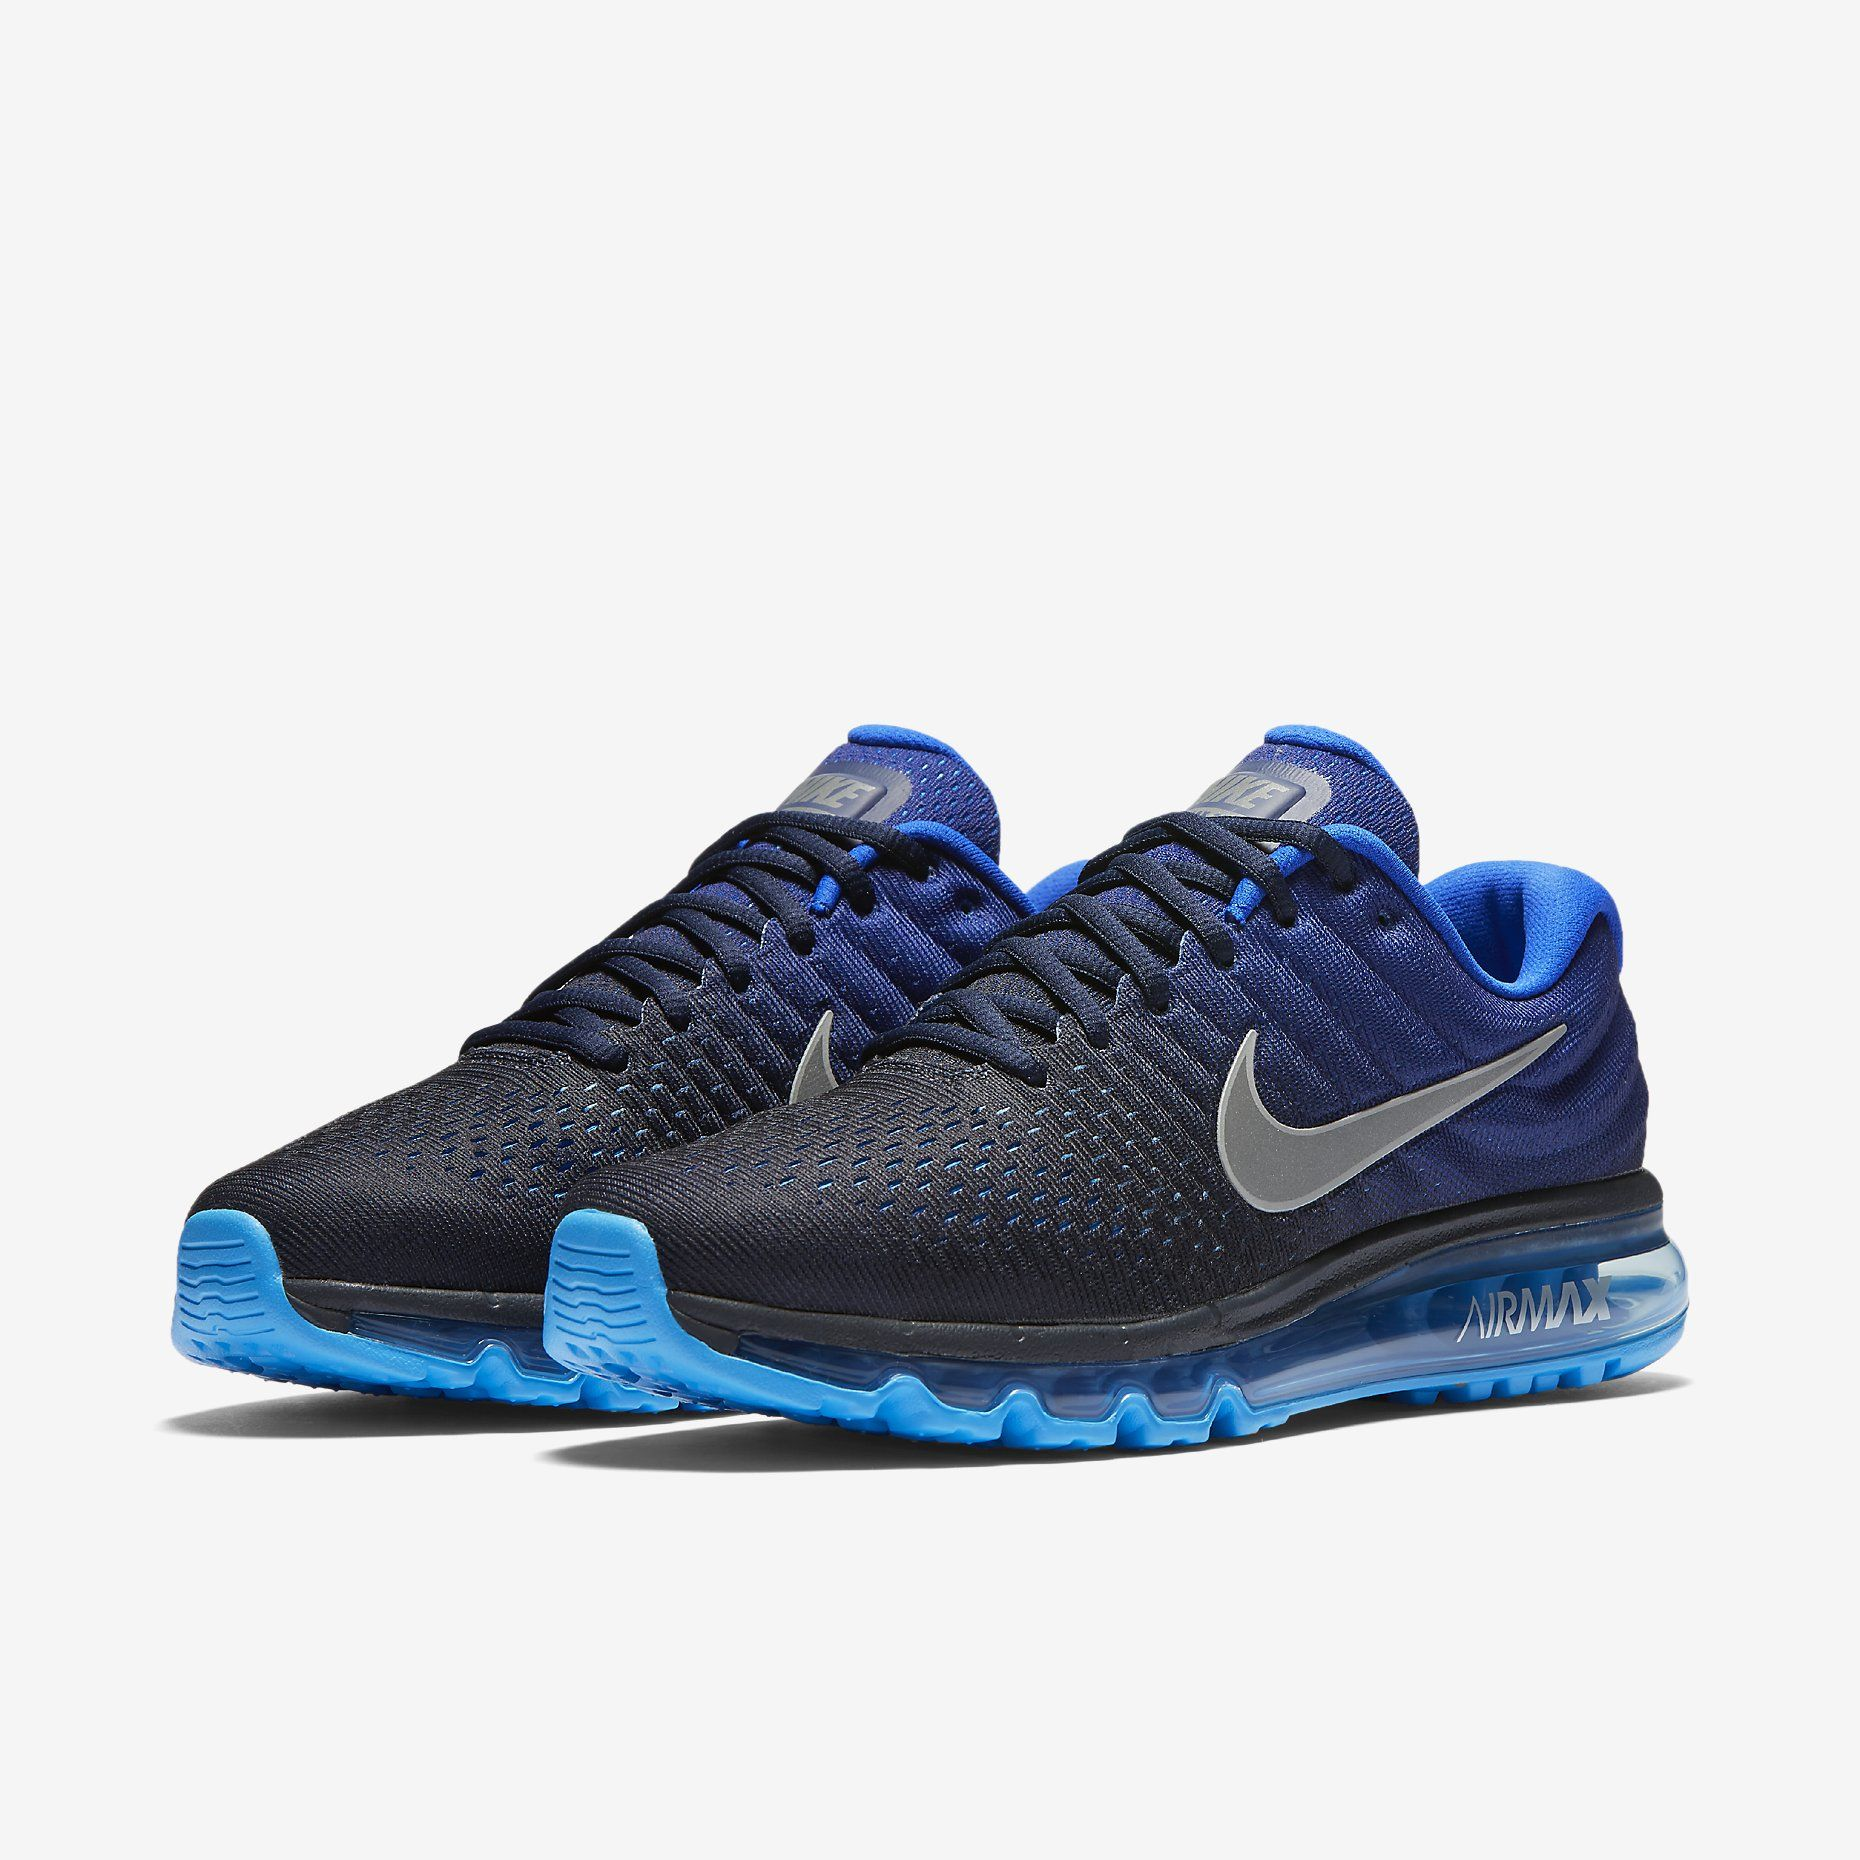 Air Max 2017 Men S Shoe Casual Athletic Shoes Running Shoes For Men Comfortable Mens Shoes